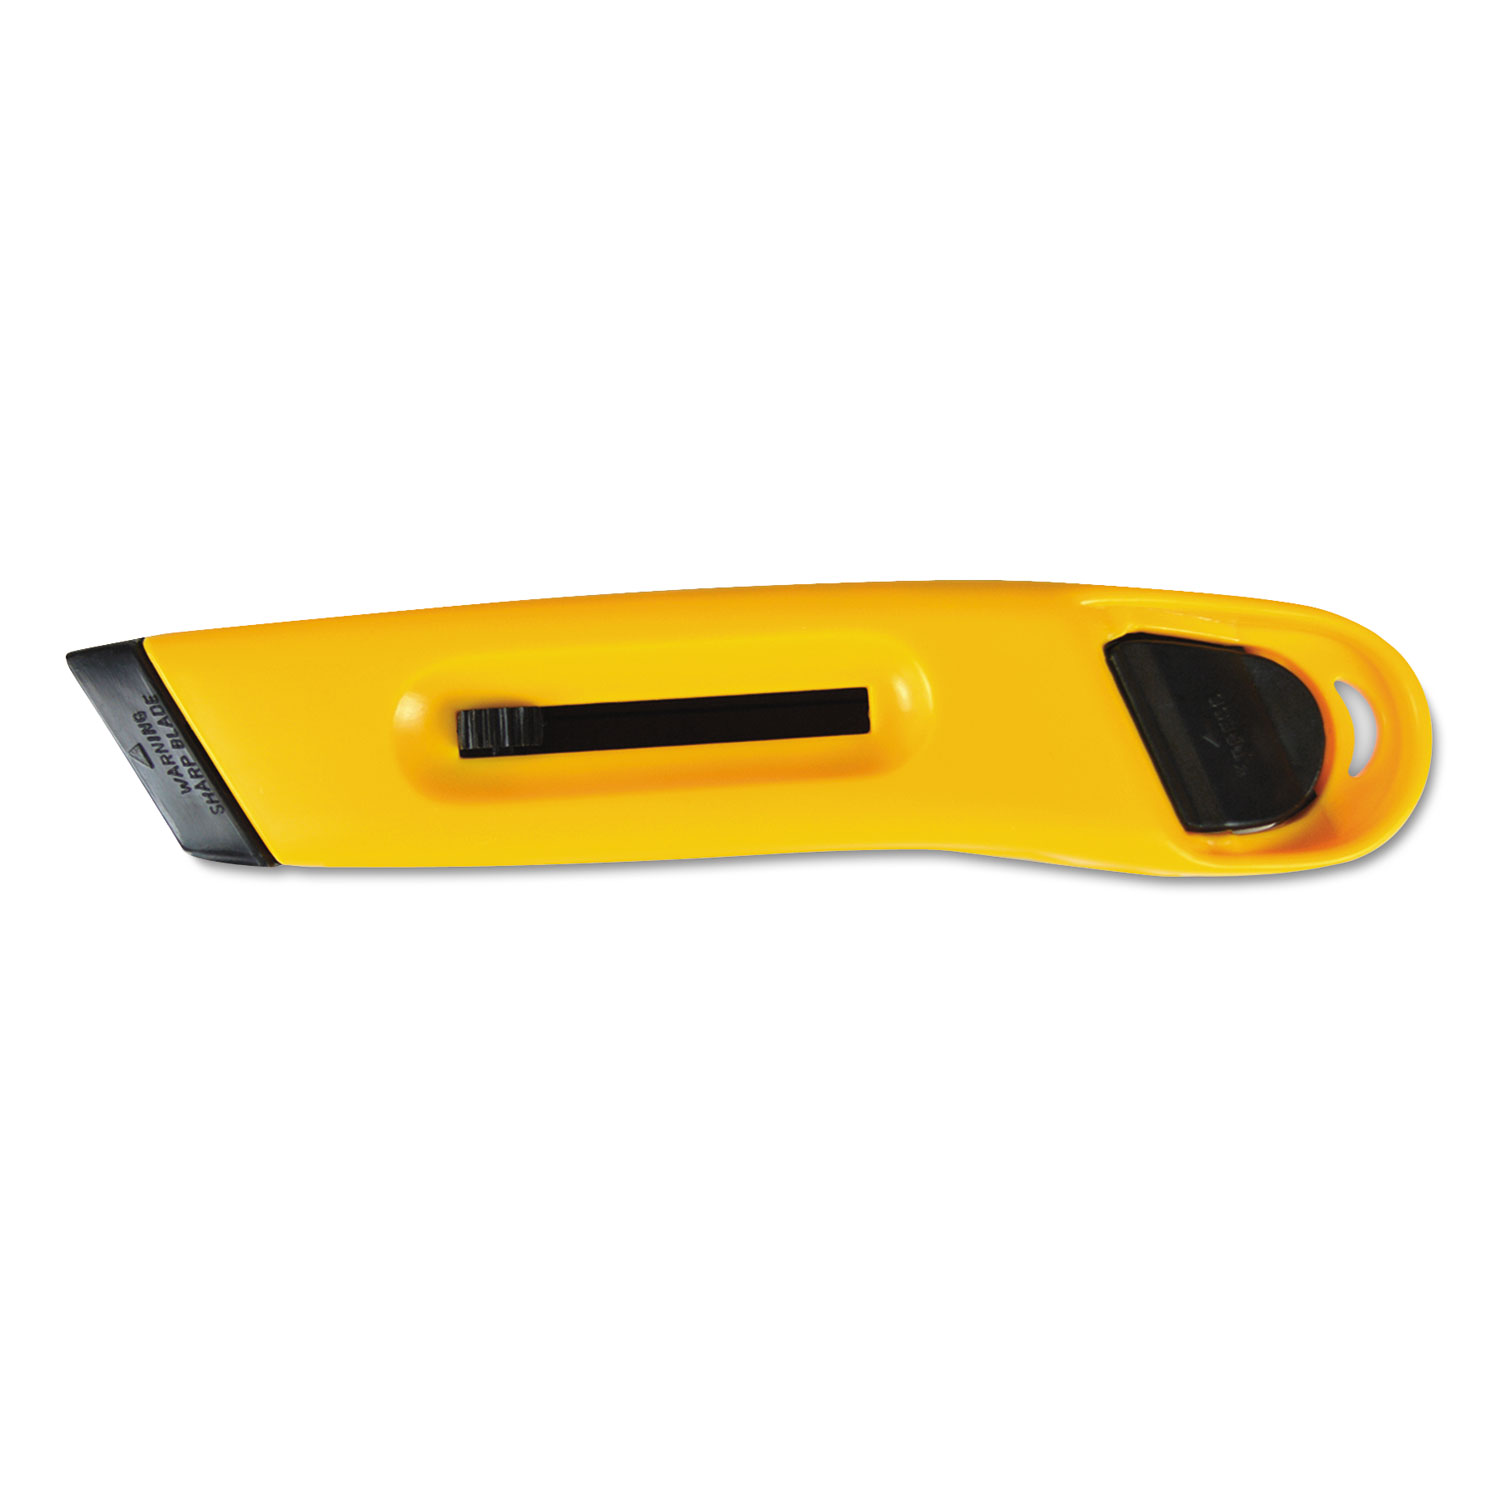 Plastic Utility Knife w/Retractable Blade & Snap Closure, Yellow